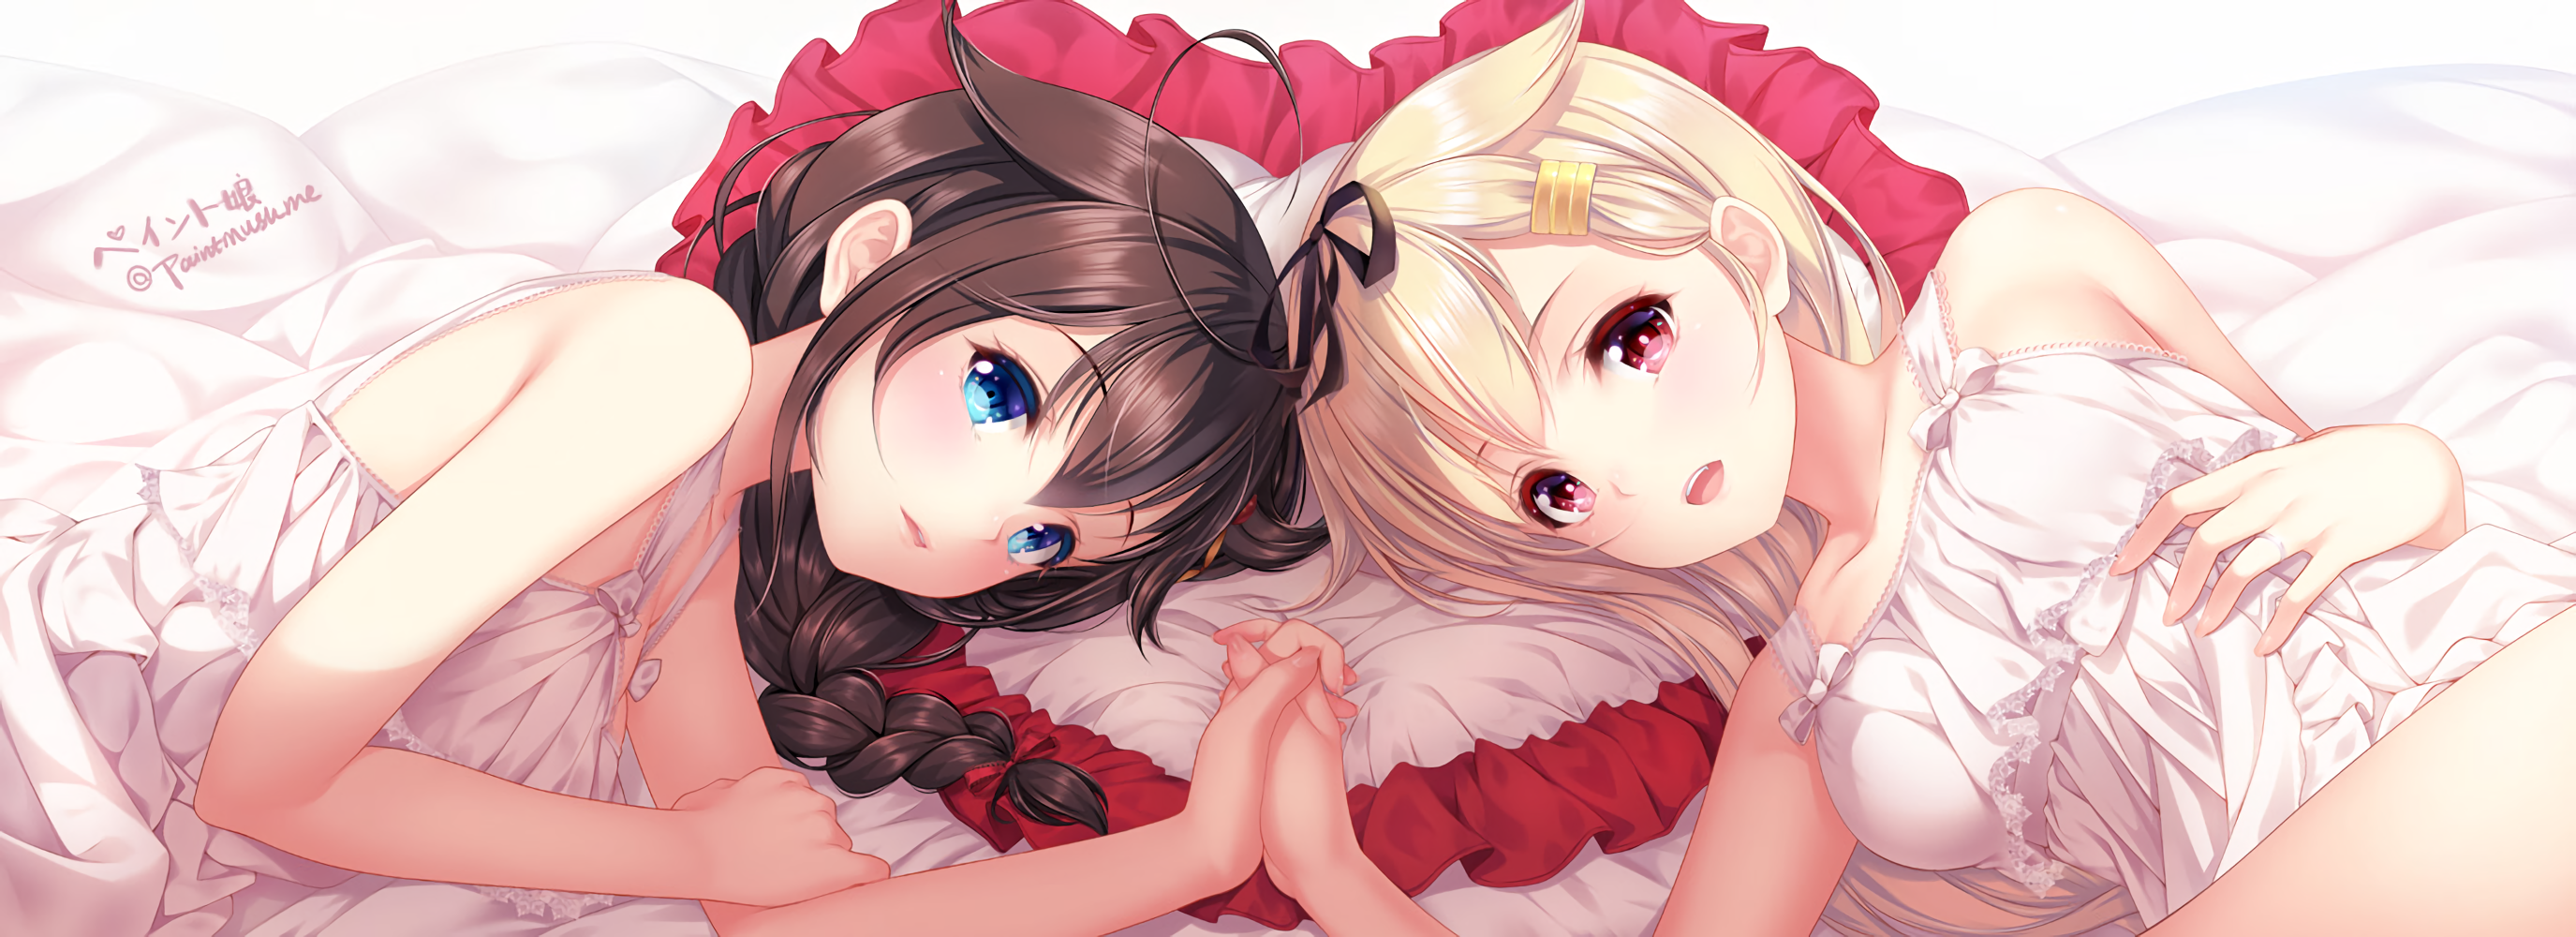 Anime 2750x1000 multiple display anime anime girls Shigure (KanColle) Yuudachi (KanColle) Kantai Collection yuri